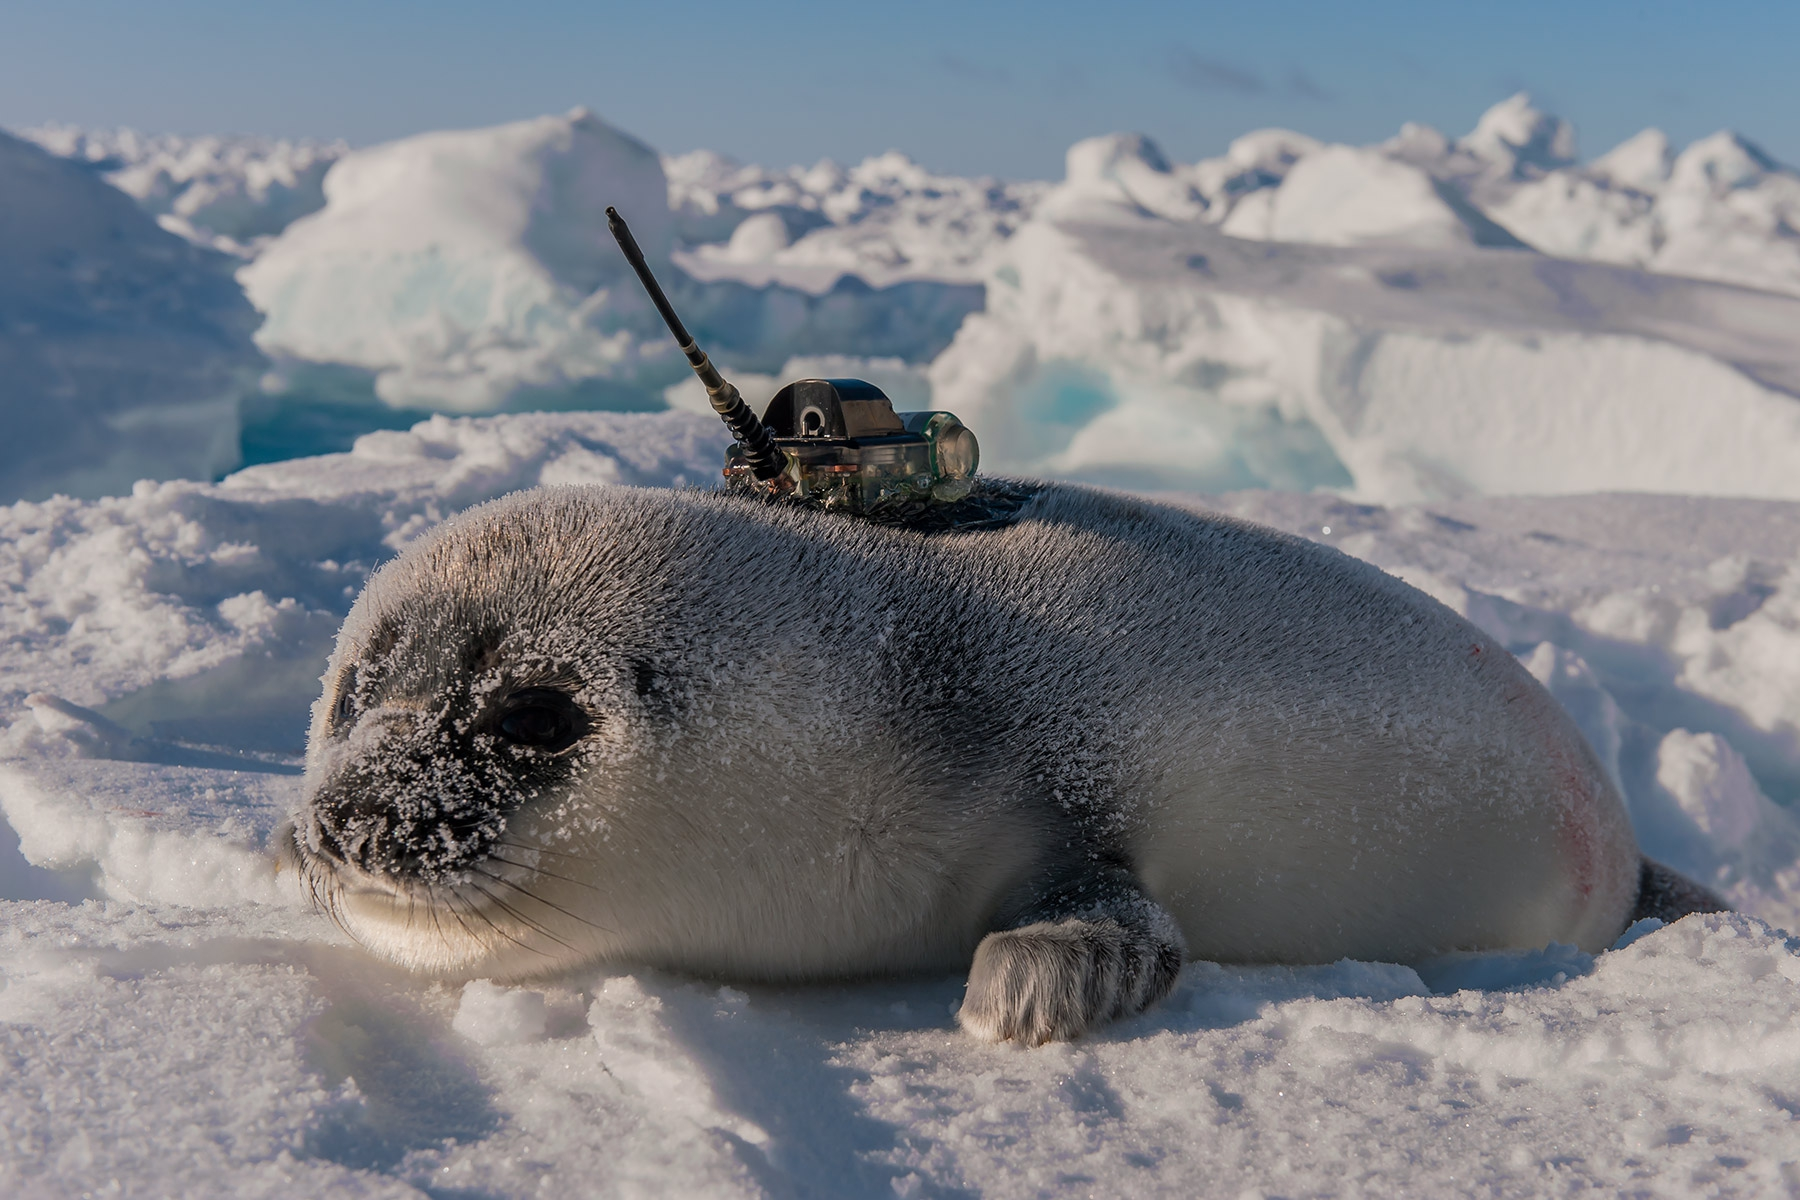 Hooded-seal-pup-and-CTD-tag-1f